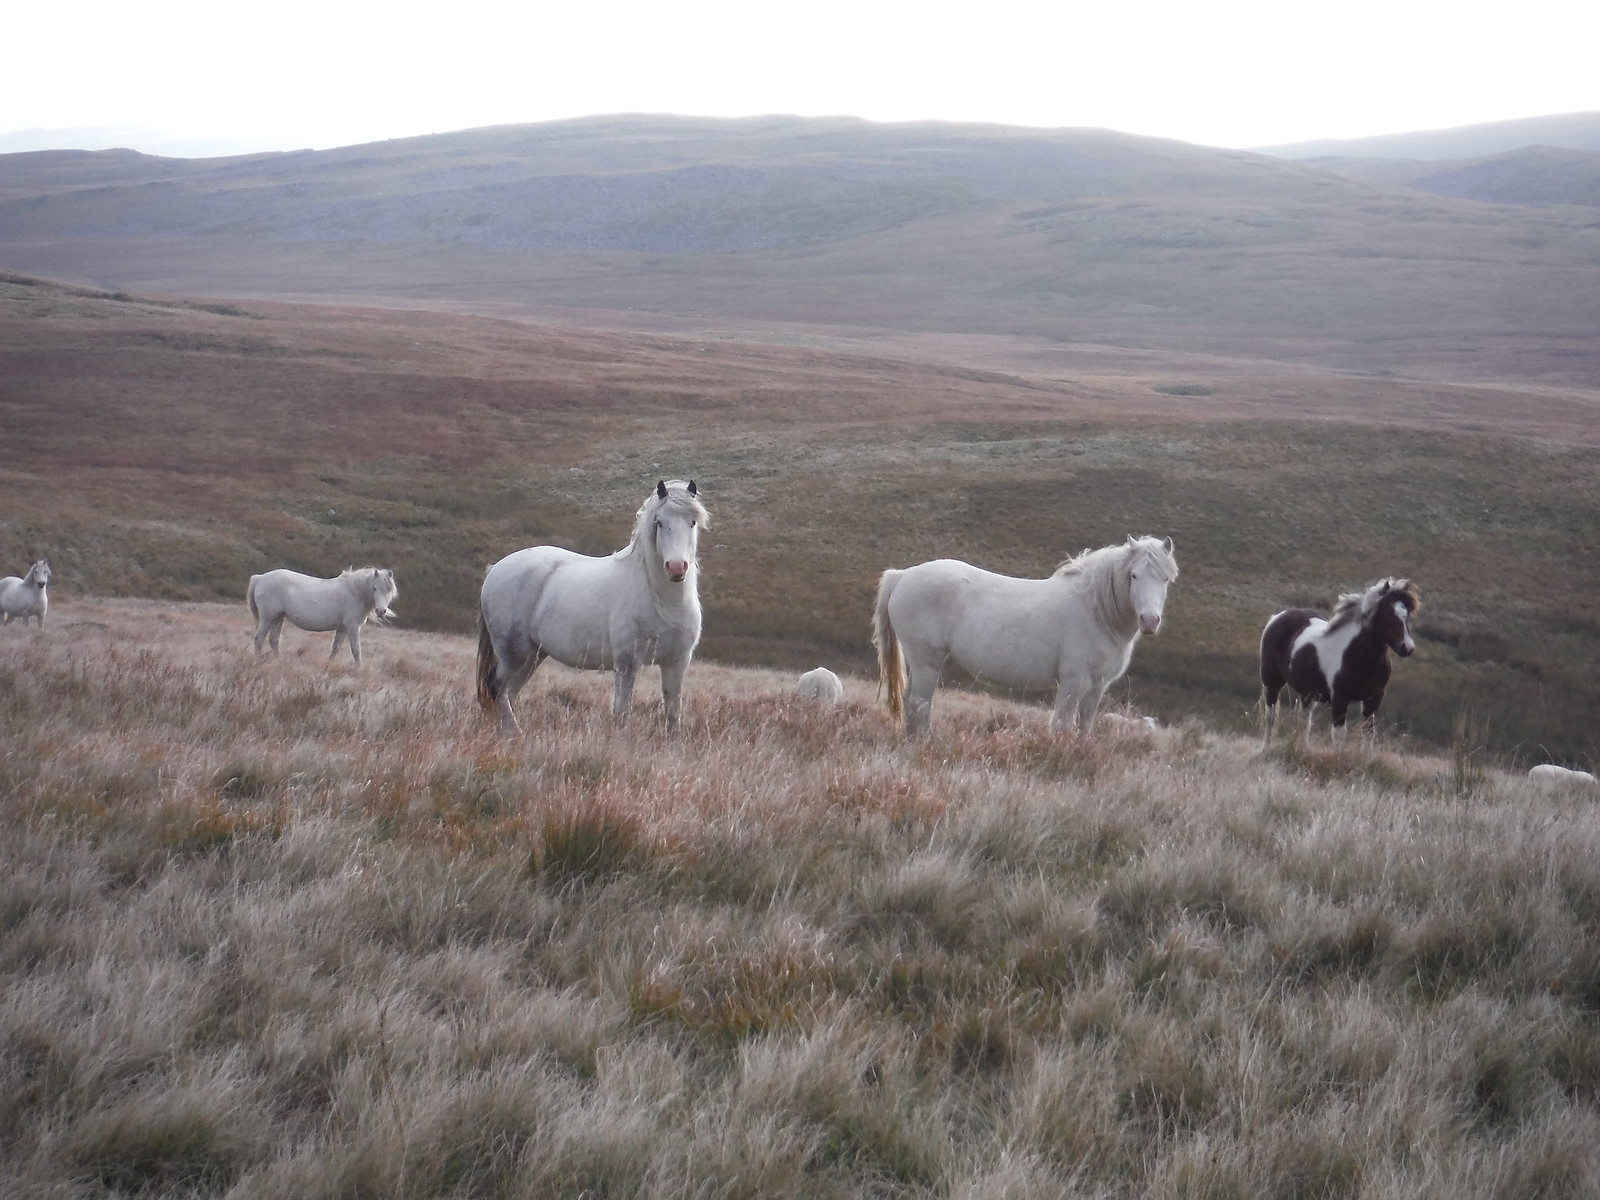 Wild Hill Ponies in Shake Hole Area SWC Walk 279 The Black Mountain - Y Mynydd Du (Glyntawe Circular) [Alternative Ending via Shake Holes Route]